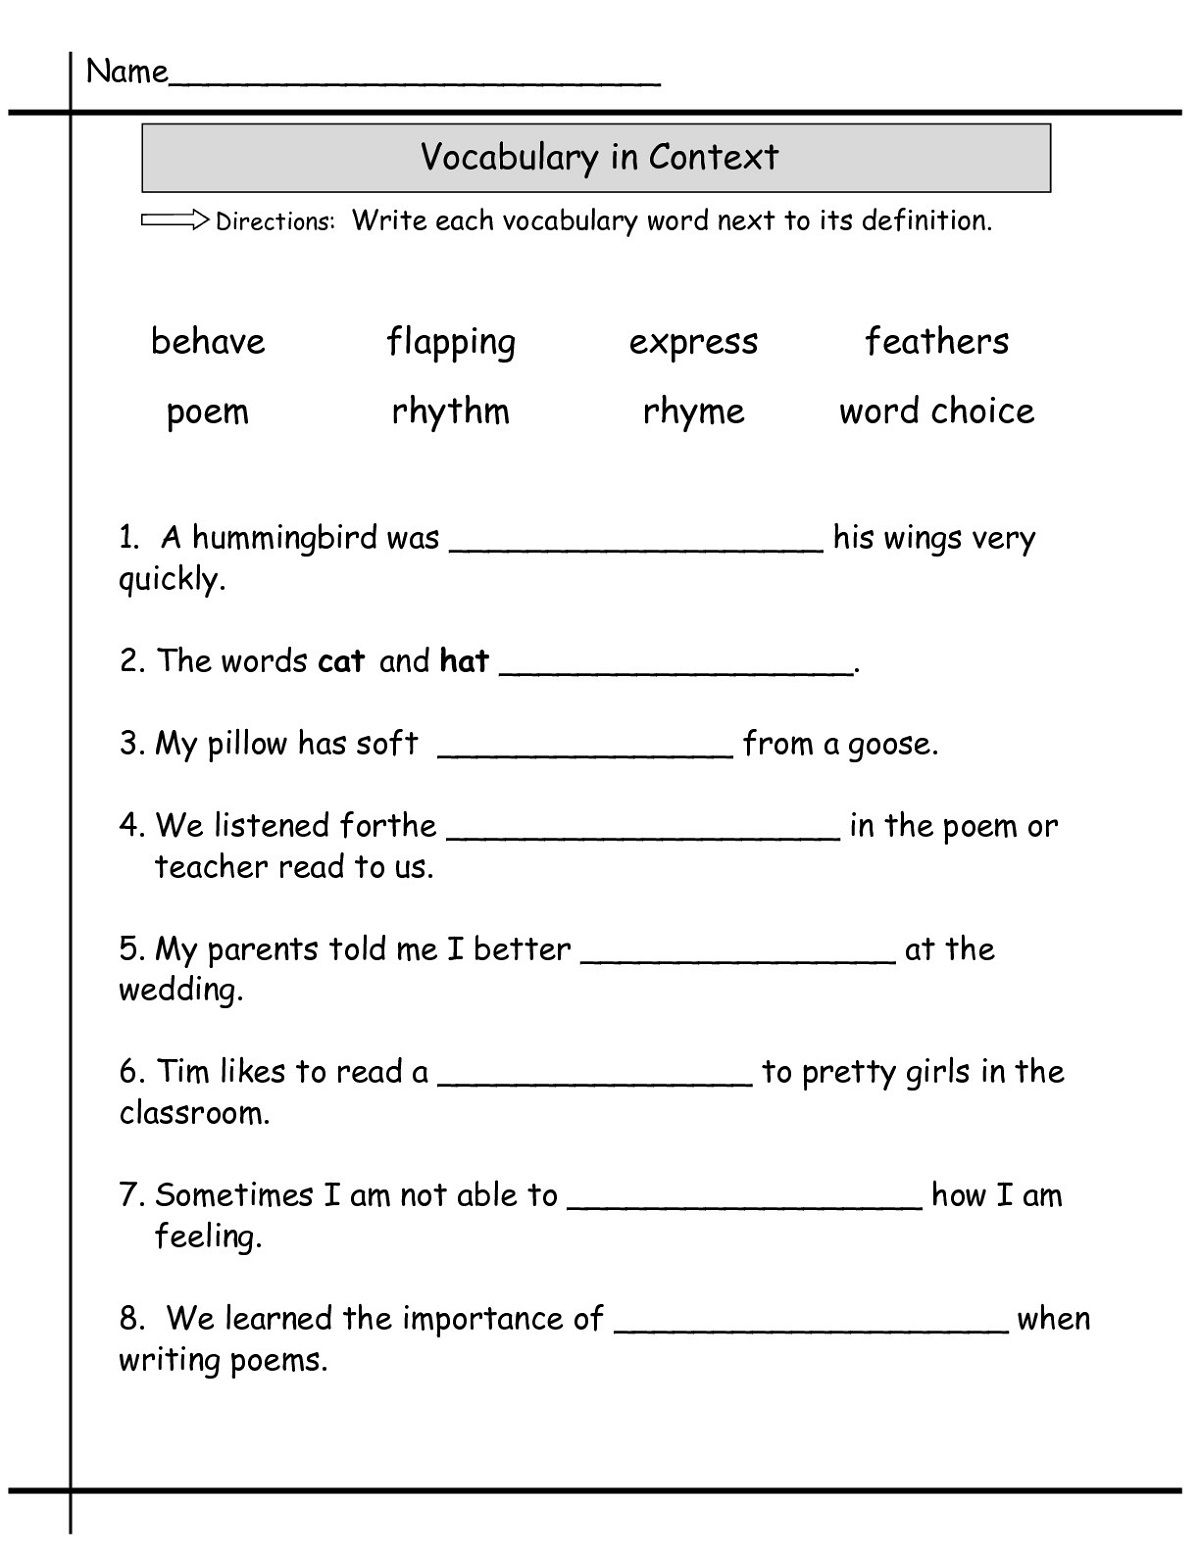 Language Worksheets 2nd grade worksheets, Vocabulary